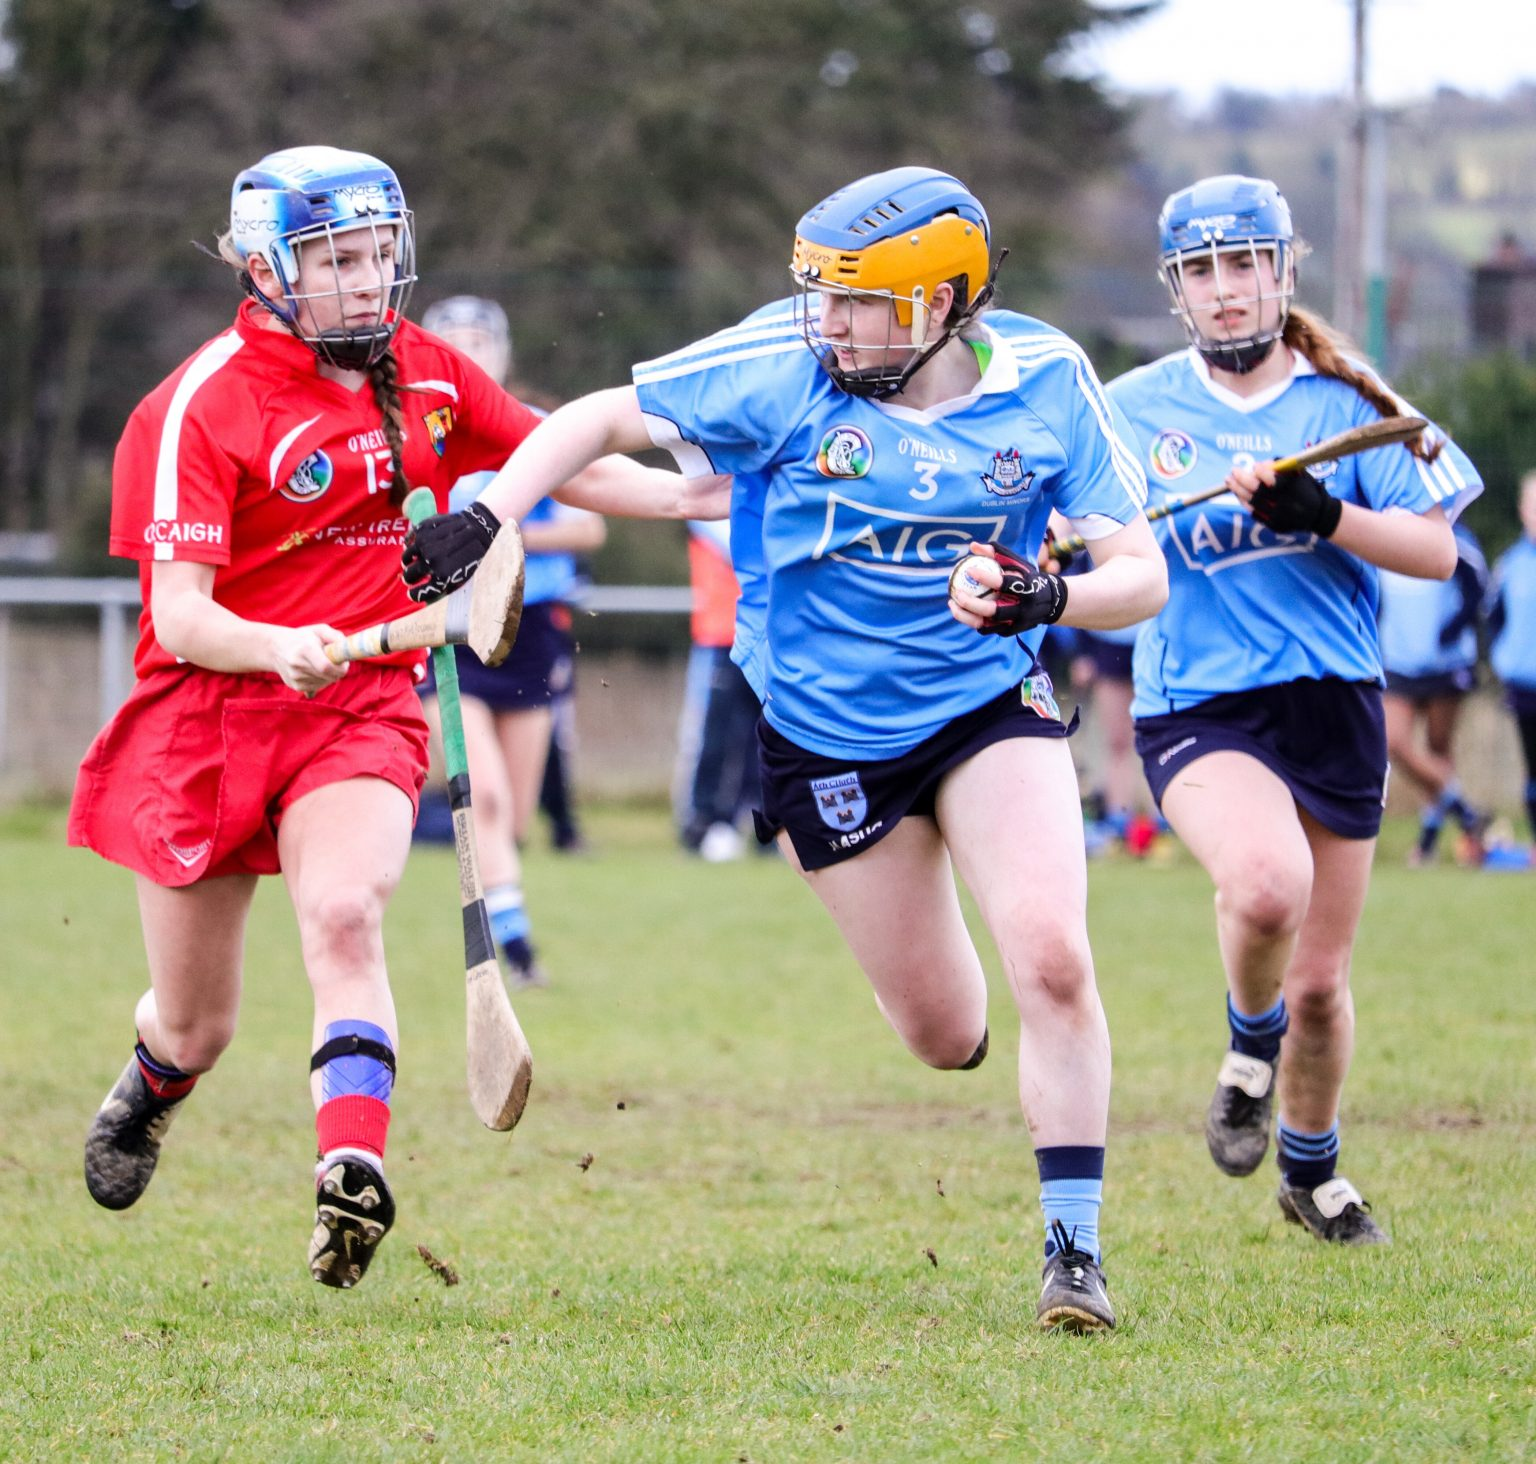 Action shot from the 2017 Minor Camogie Championship meeting between Dublin and Cork